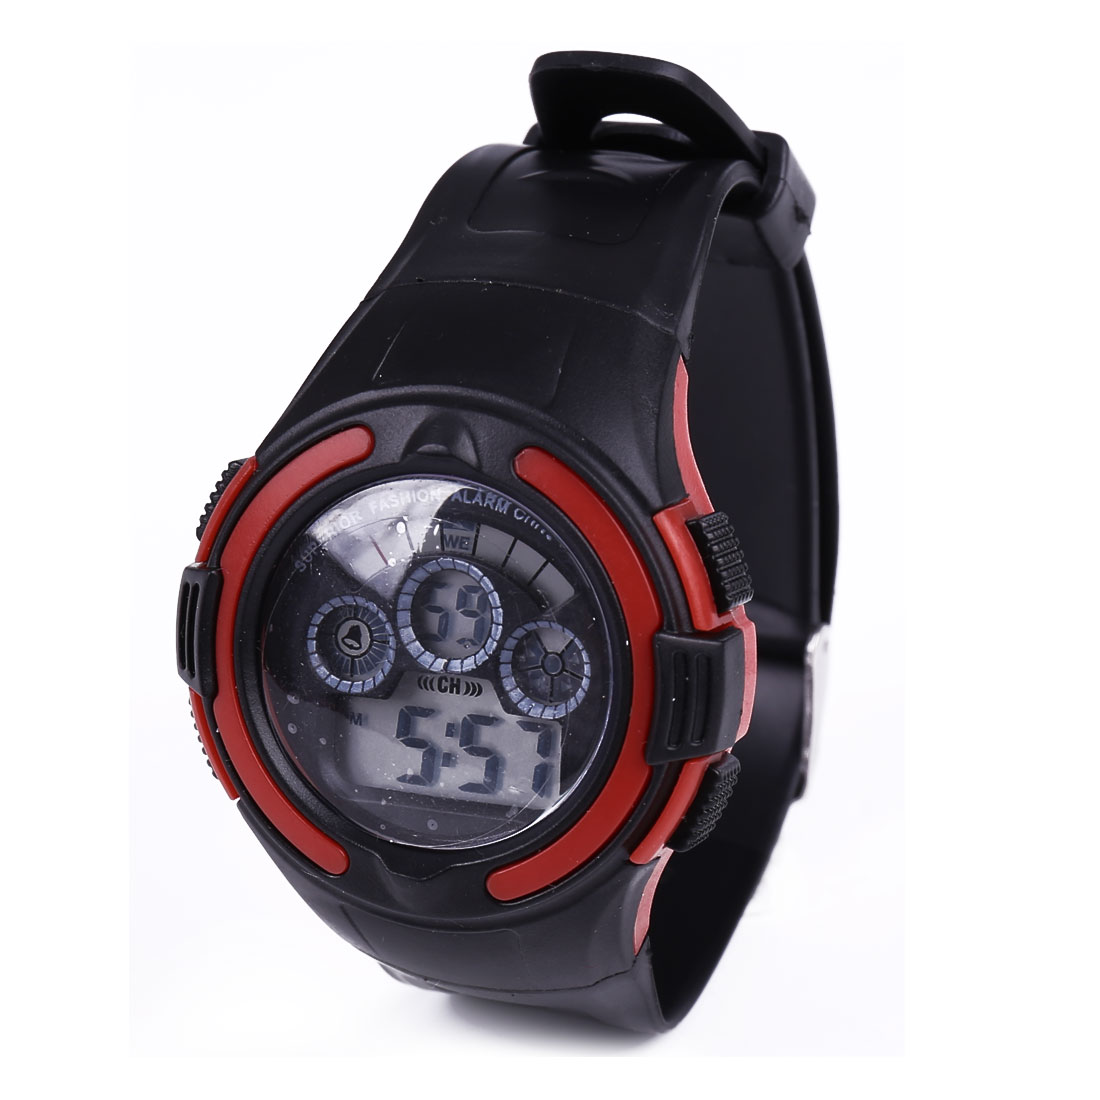 Black Plastic Adjustable Band Water Resistant LCD Digital Alarm Sports Wrist Watch